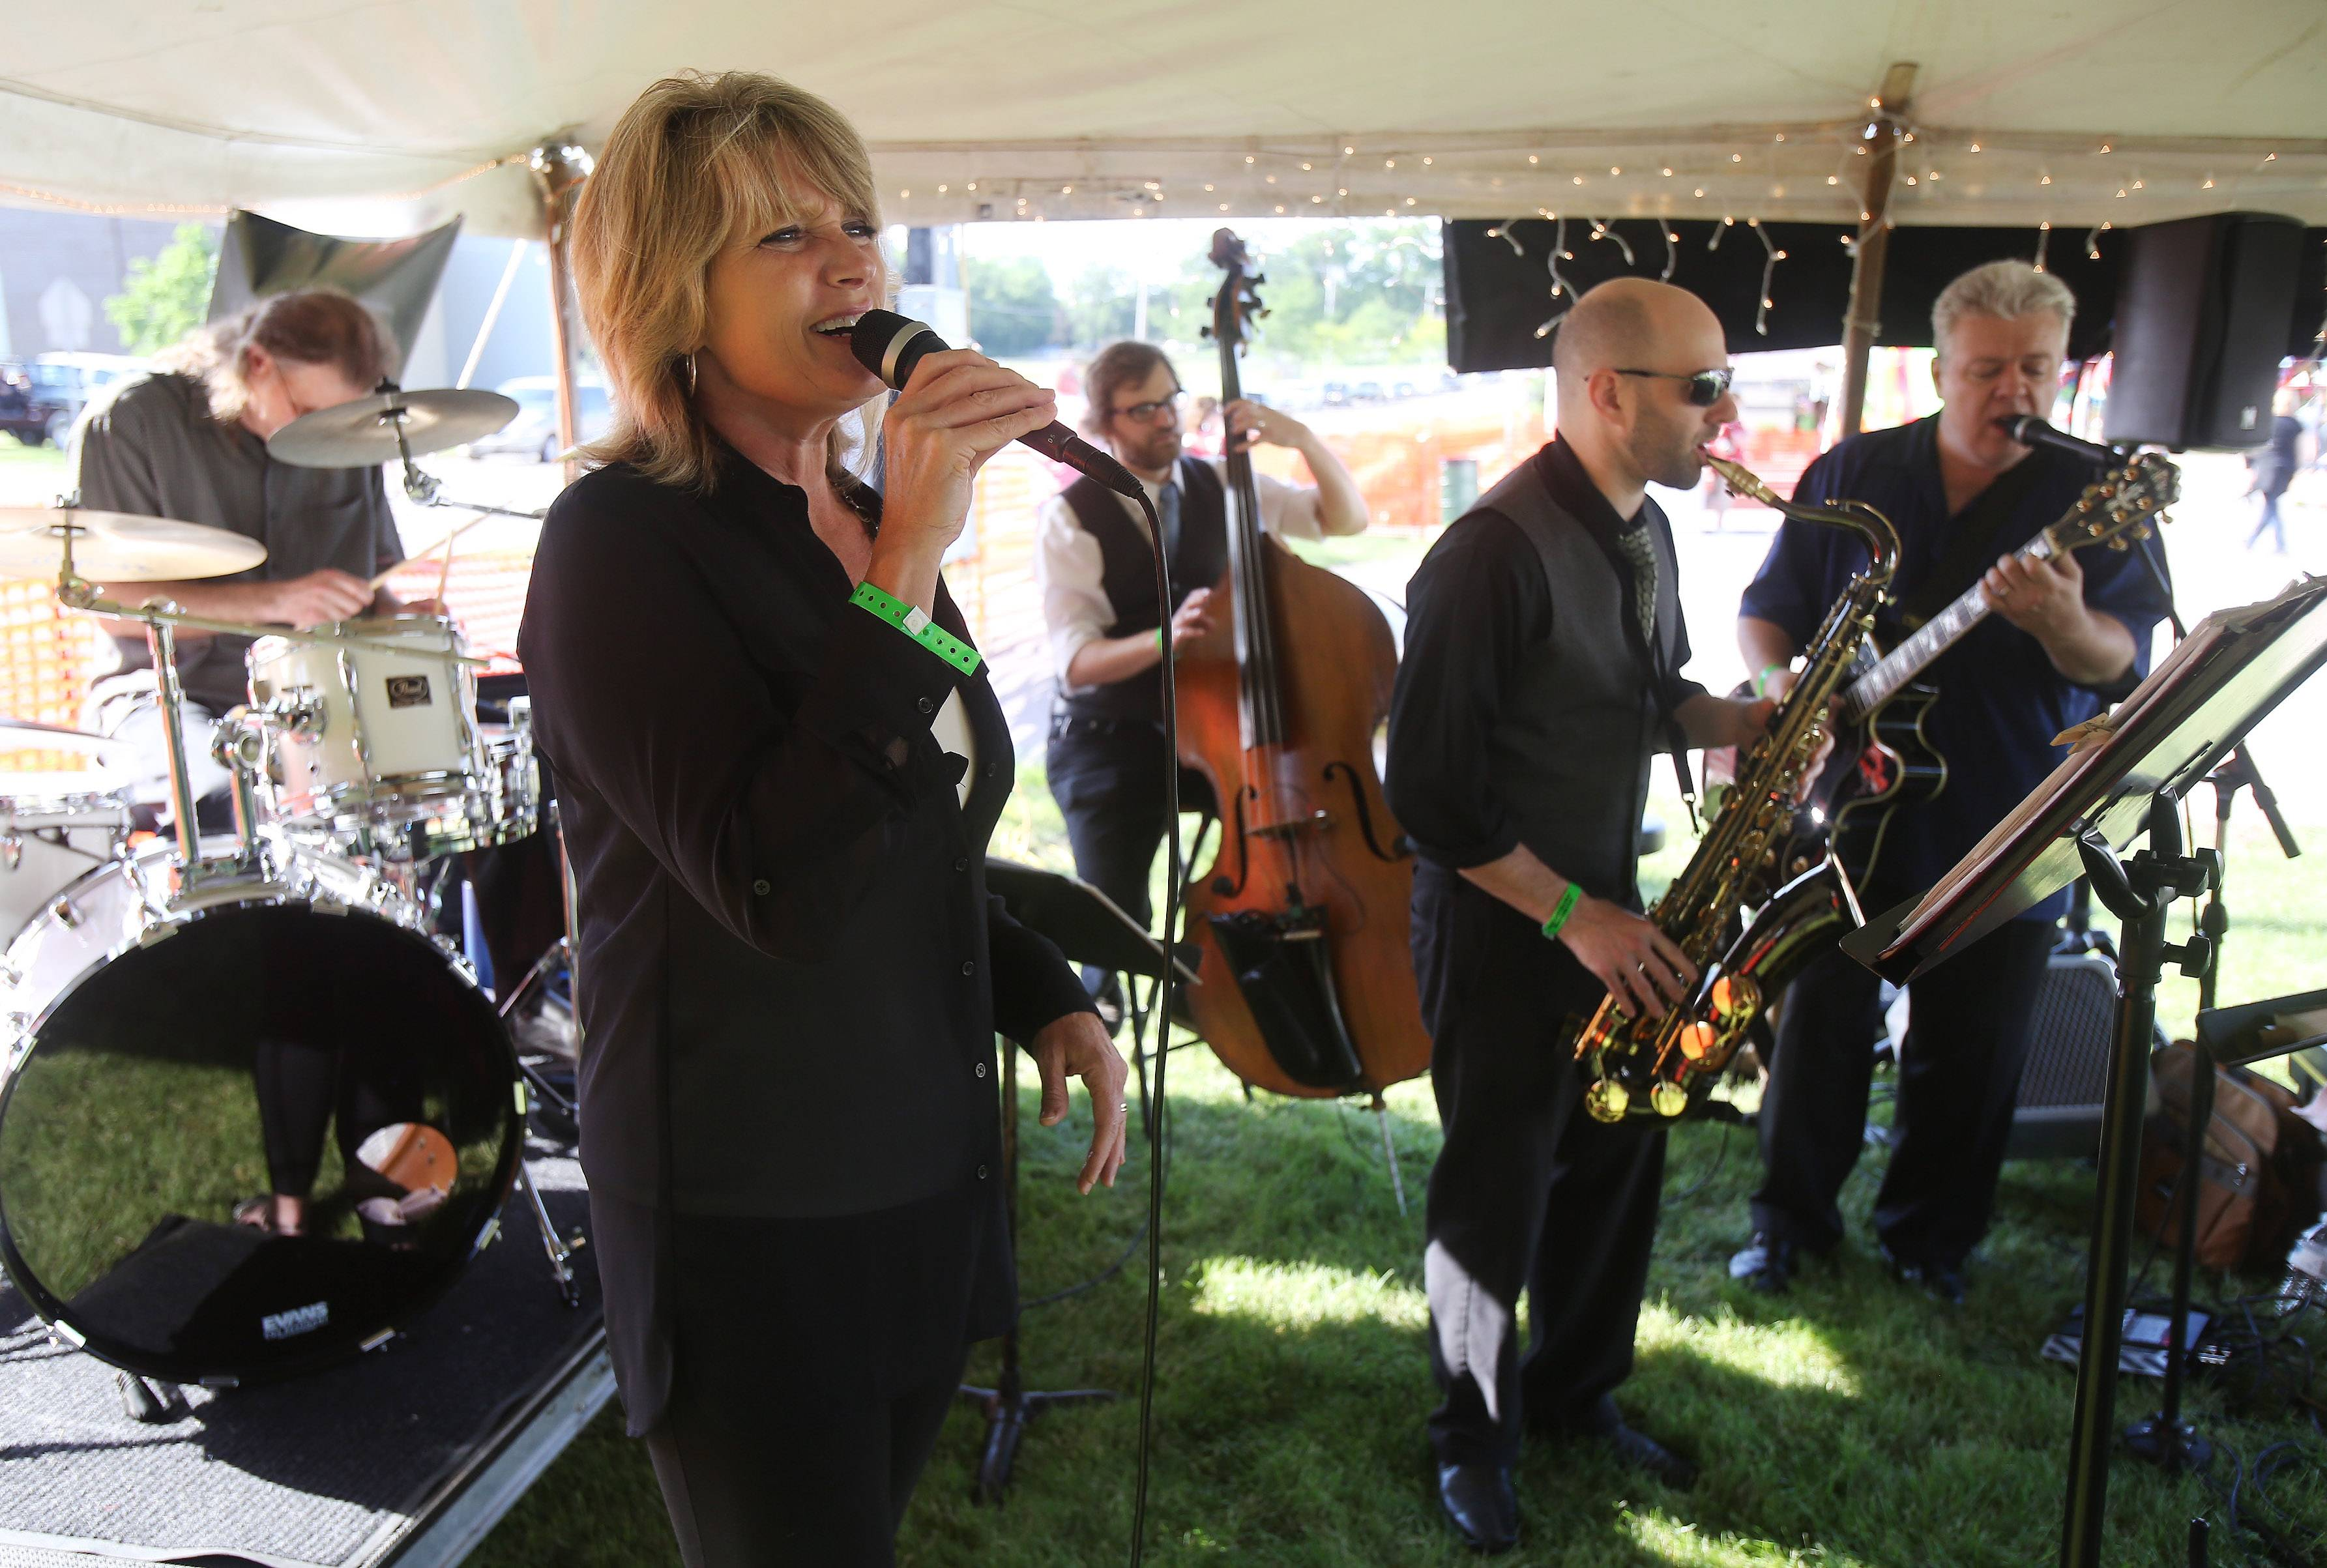 Beth Ruehrdanz sings with the SwingSets jazz band in the wine and cheese tasting tent.